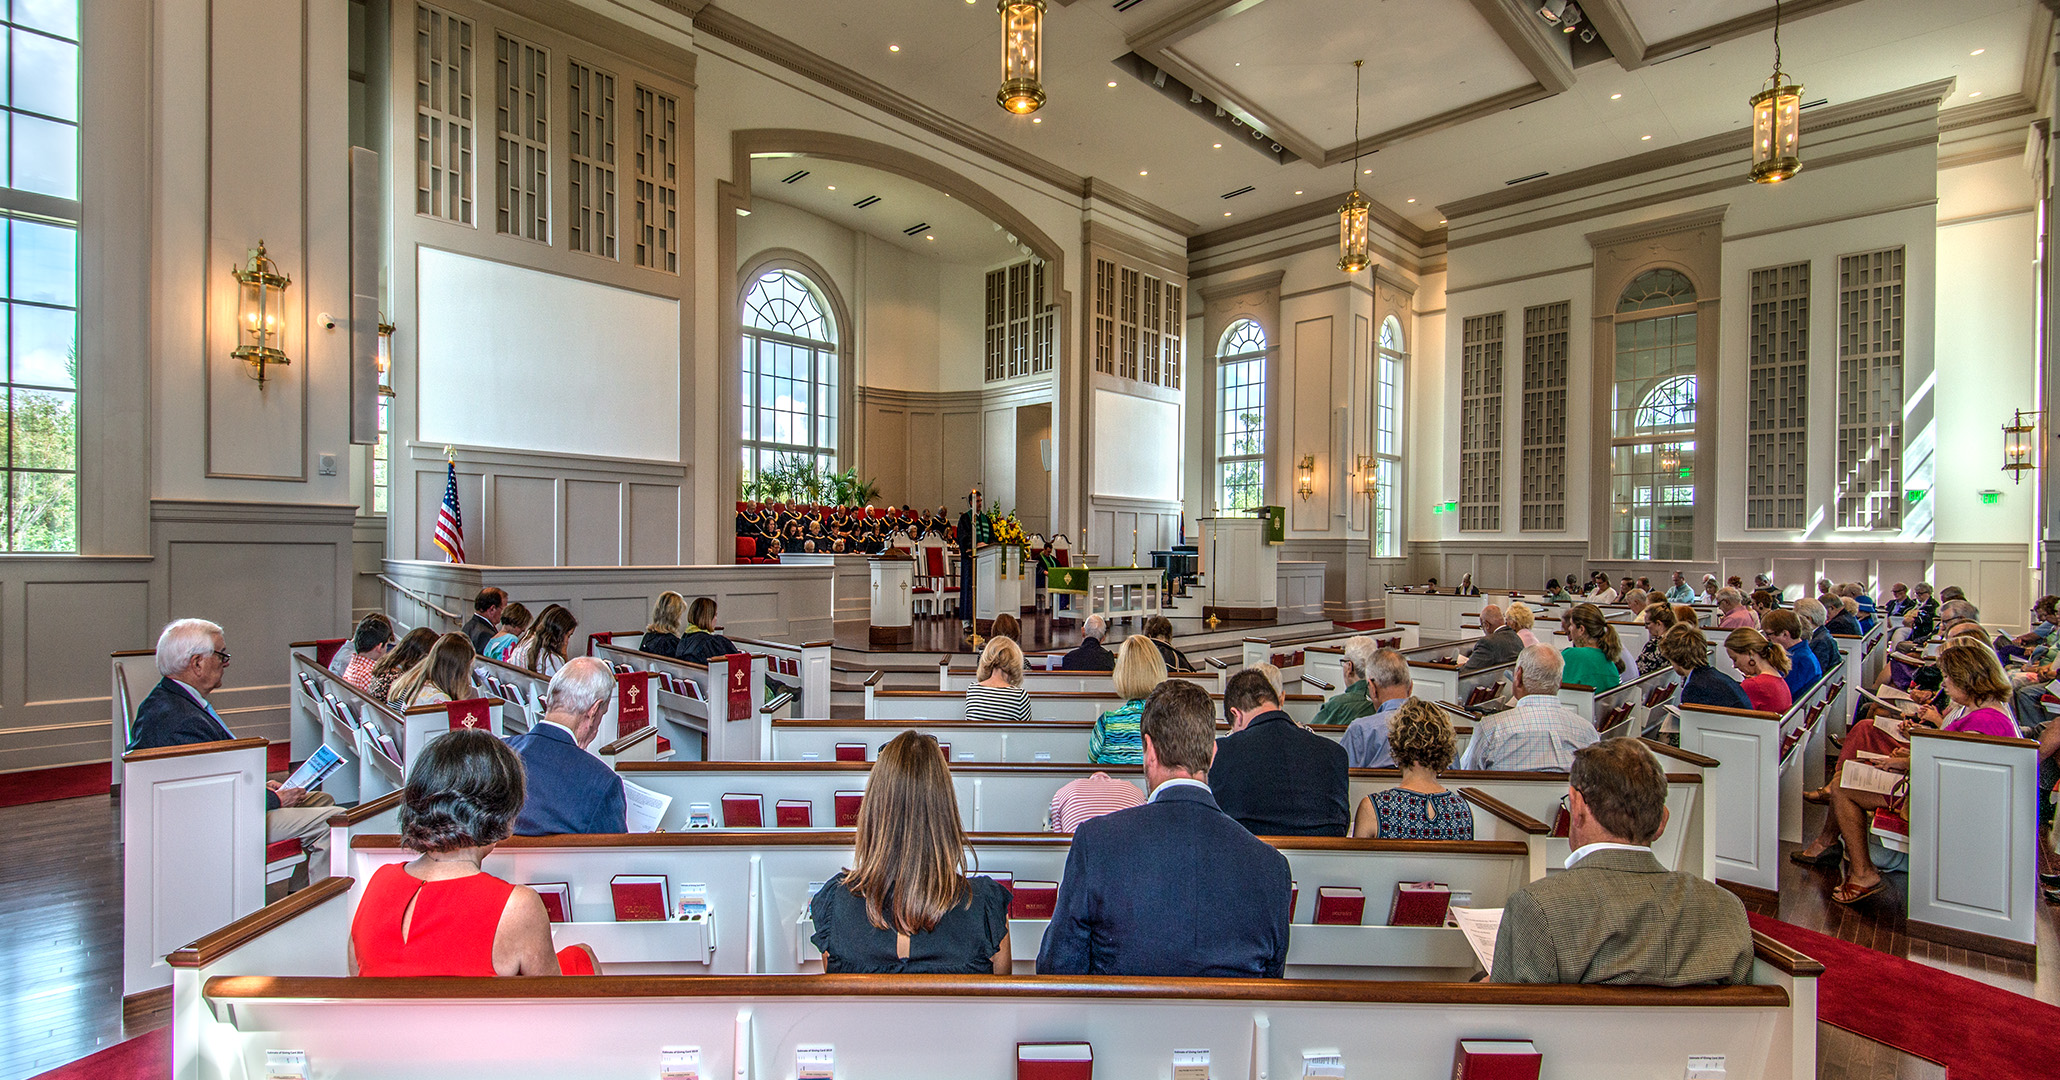 BOUDREAUX architects designed the new sanctuary at the First Presbyterian Church in Myrtle Beach.